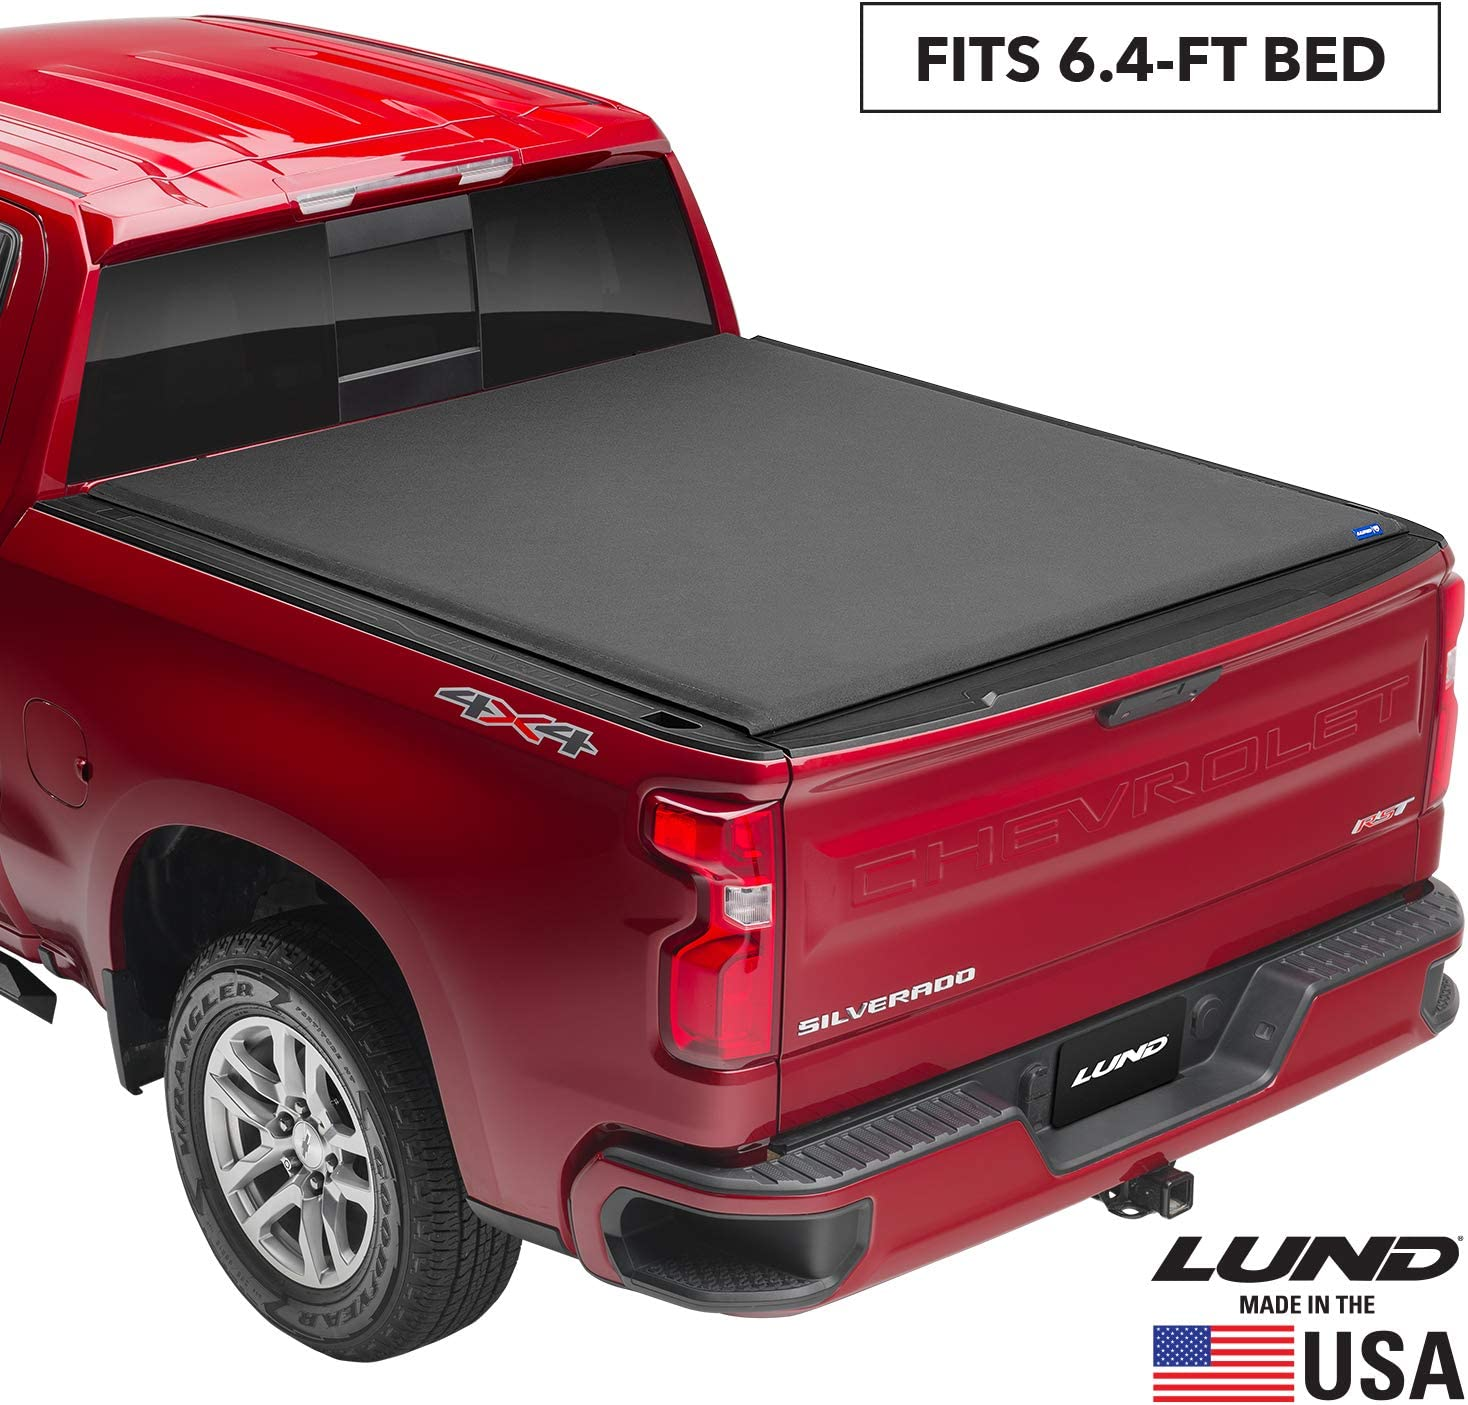 "Lund Genesis Elite Roll Up, Soft Roll Up Truck Bed Tonneau Cover | 96817 | Fits 1994 - 2001 Dodge Ram 1500 6' 4"" Bed"